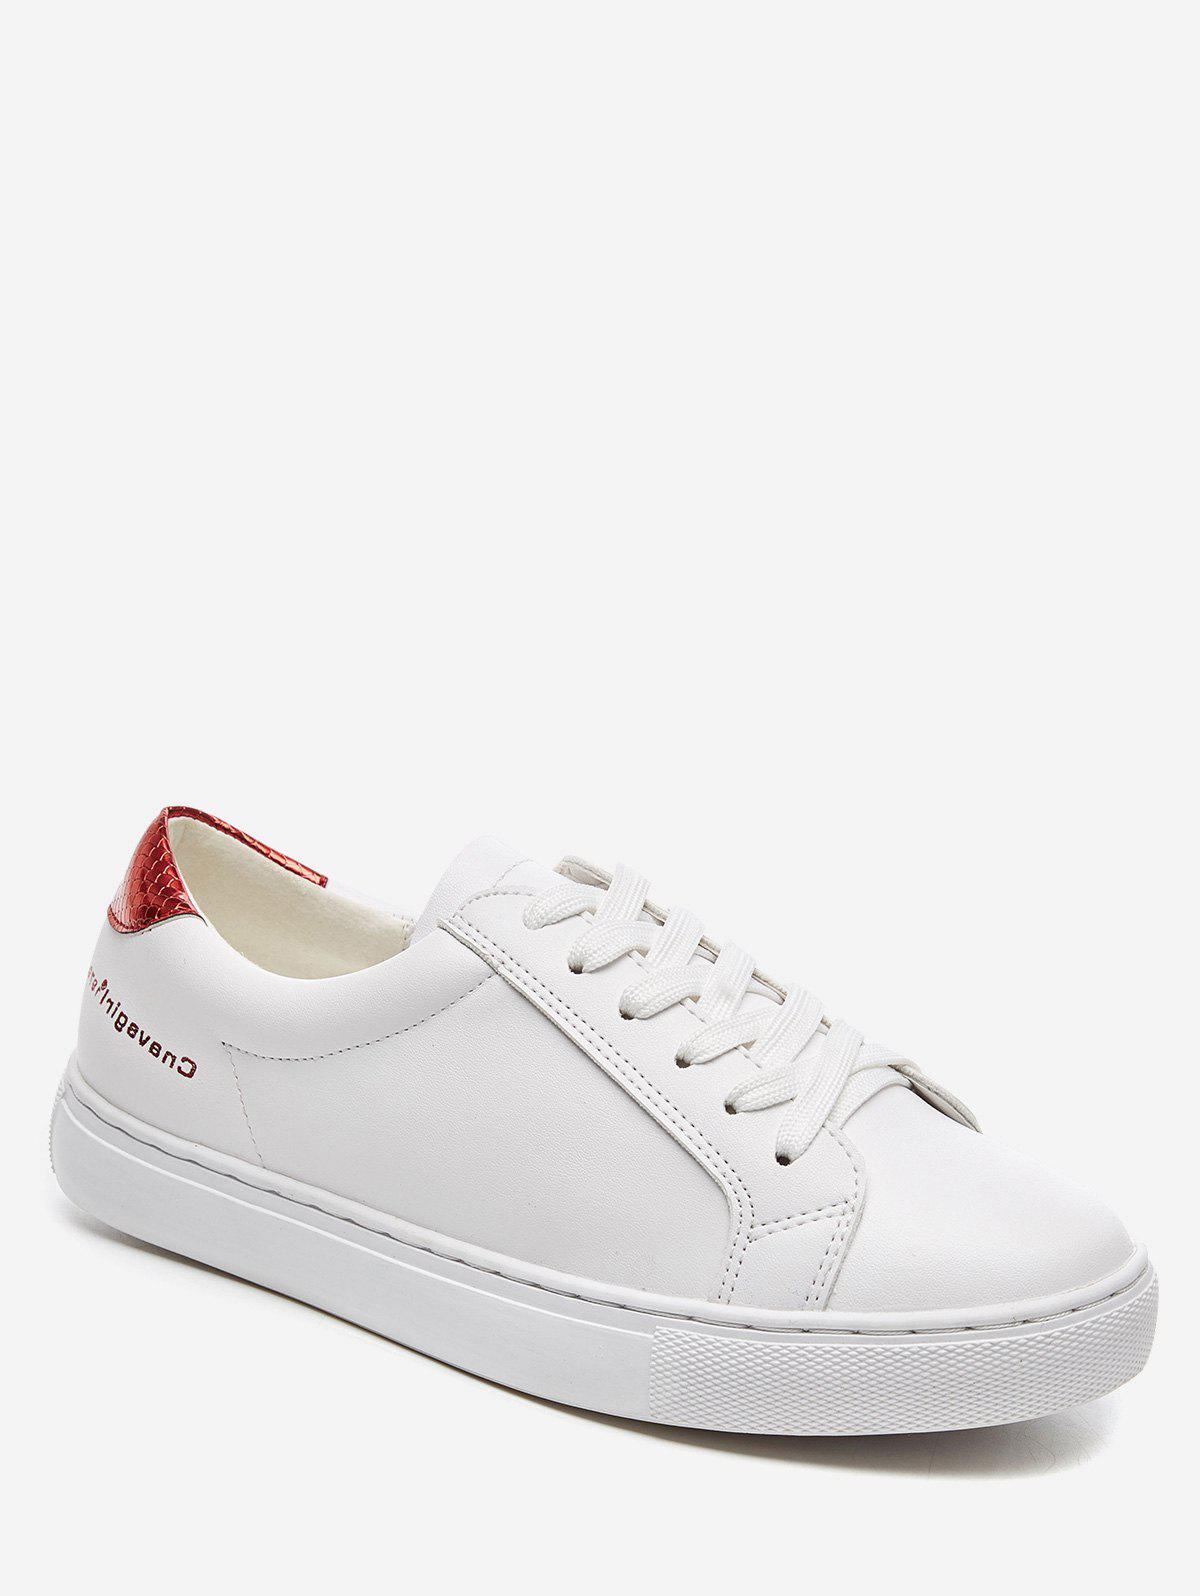 Fancy Casual Contrasting Color Low Top Sneakers